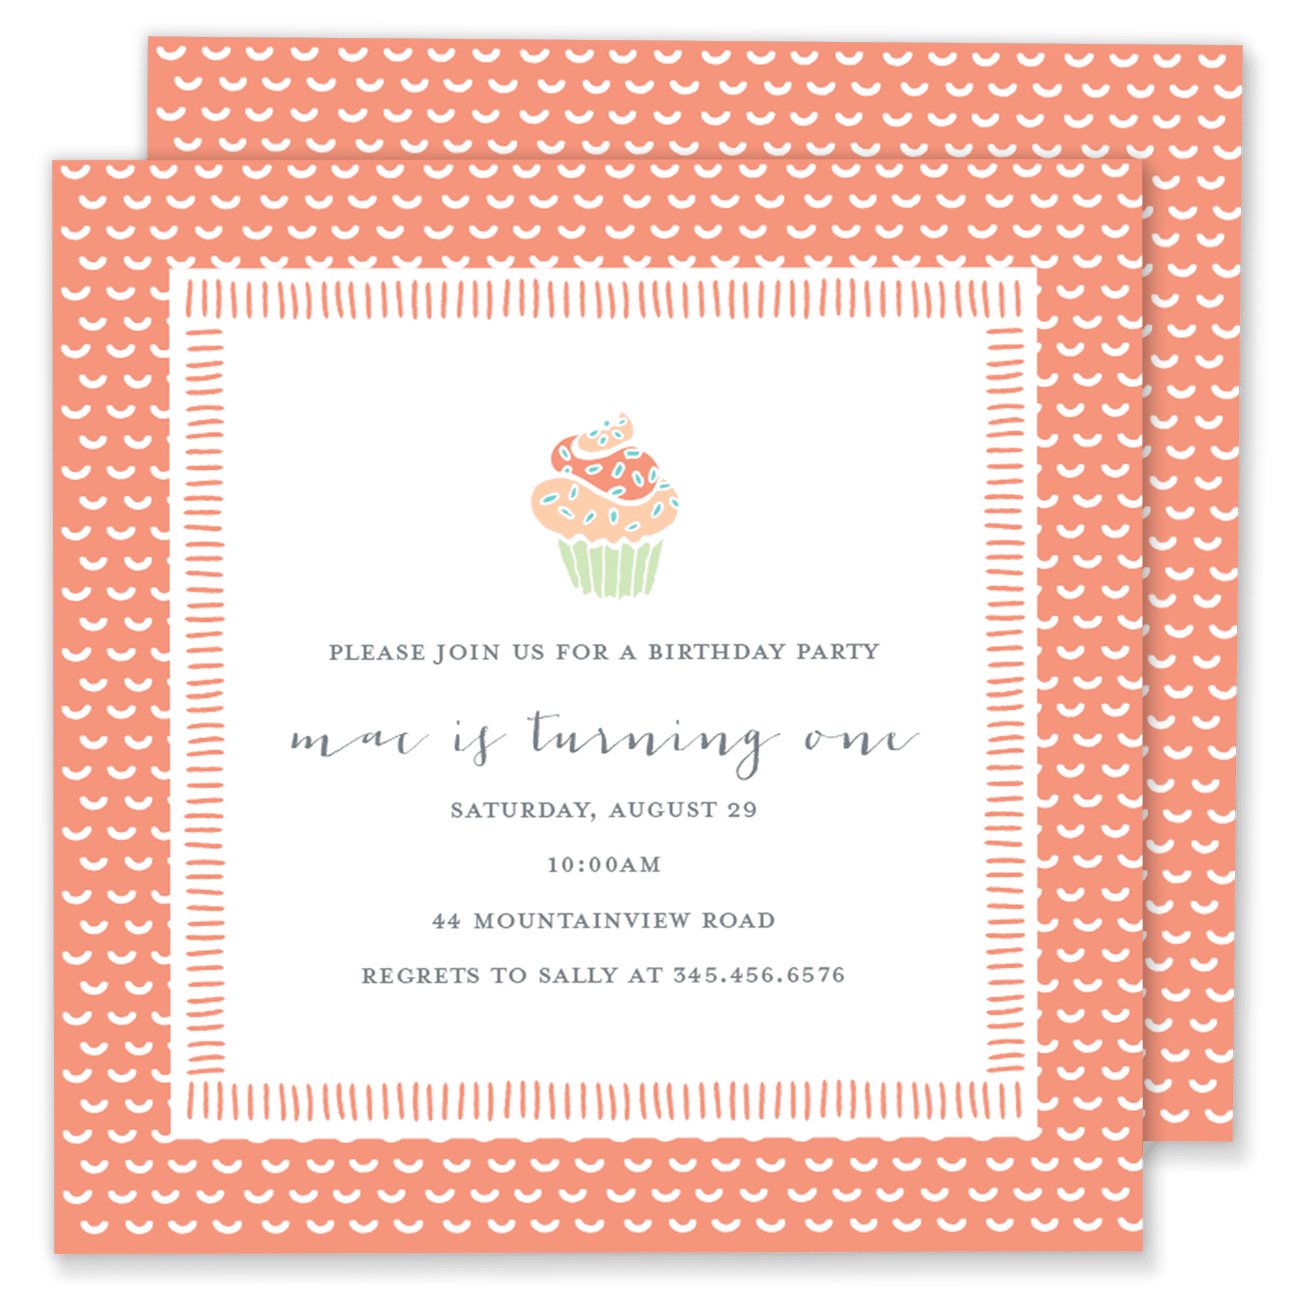 Cupcake Birthday Party Invitation – Gilm Press